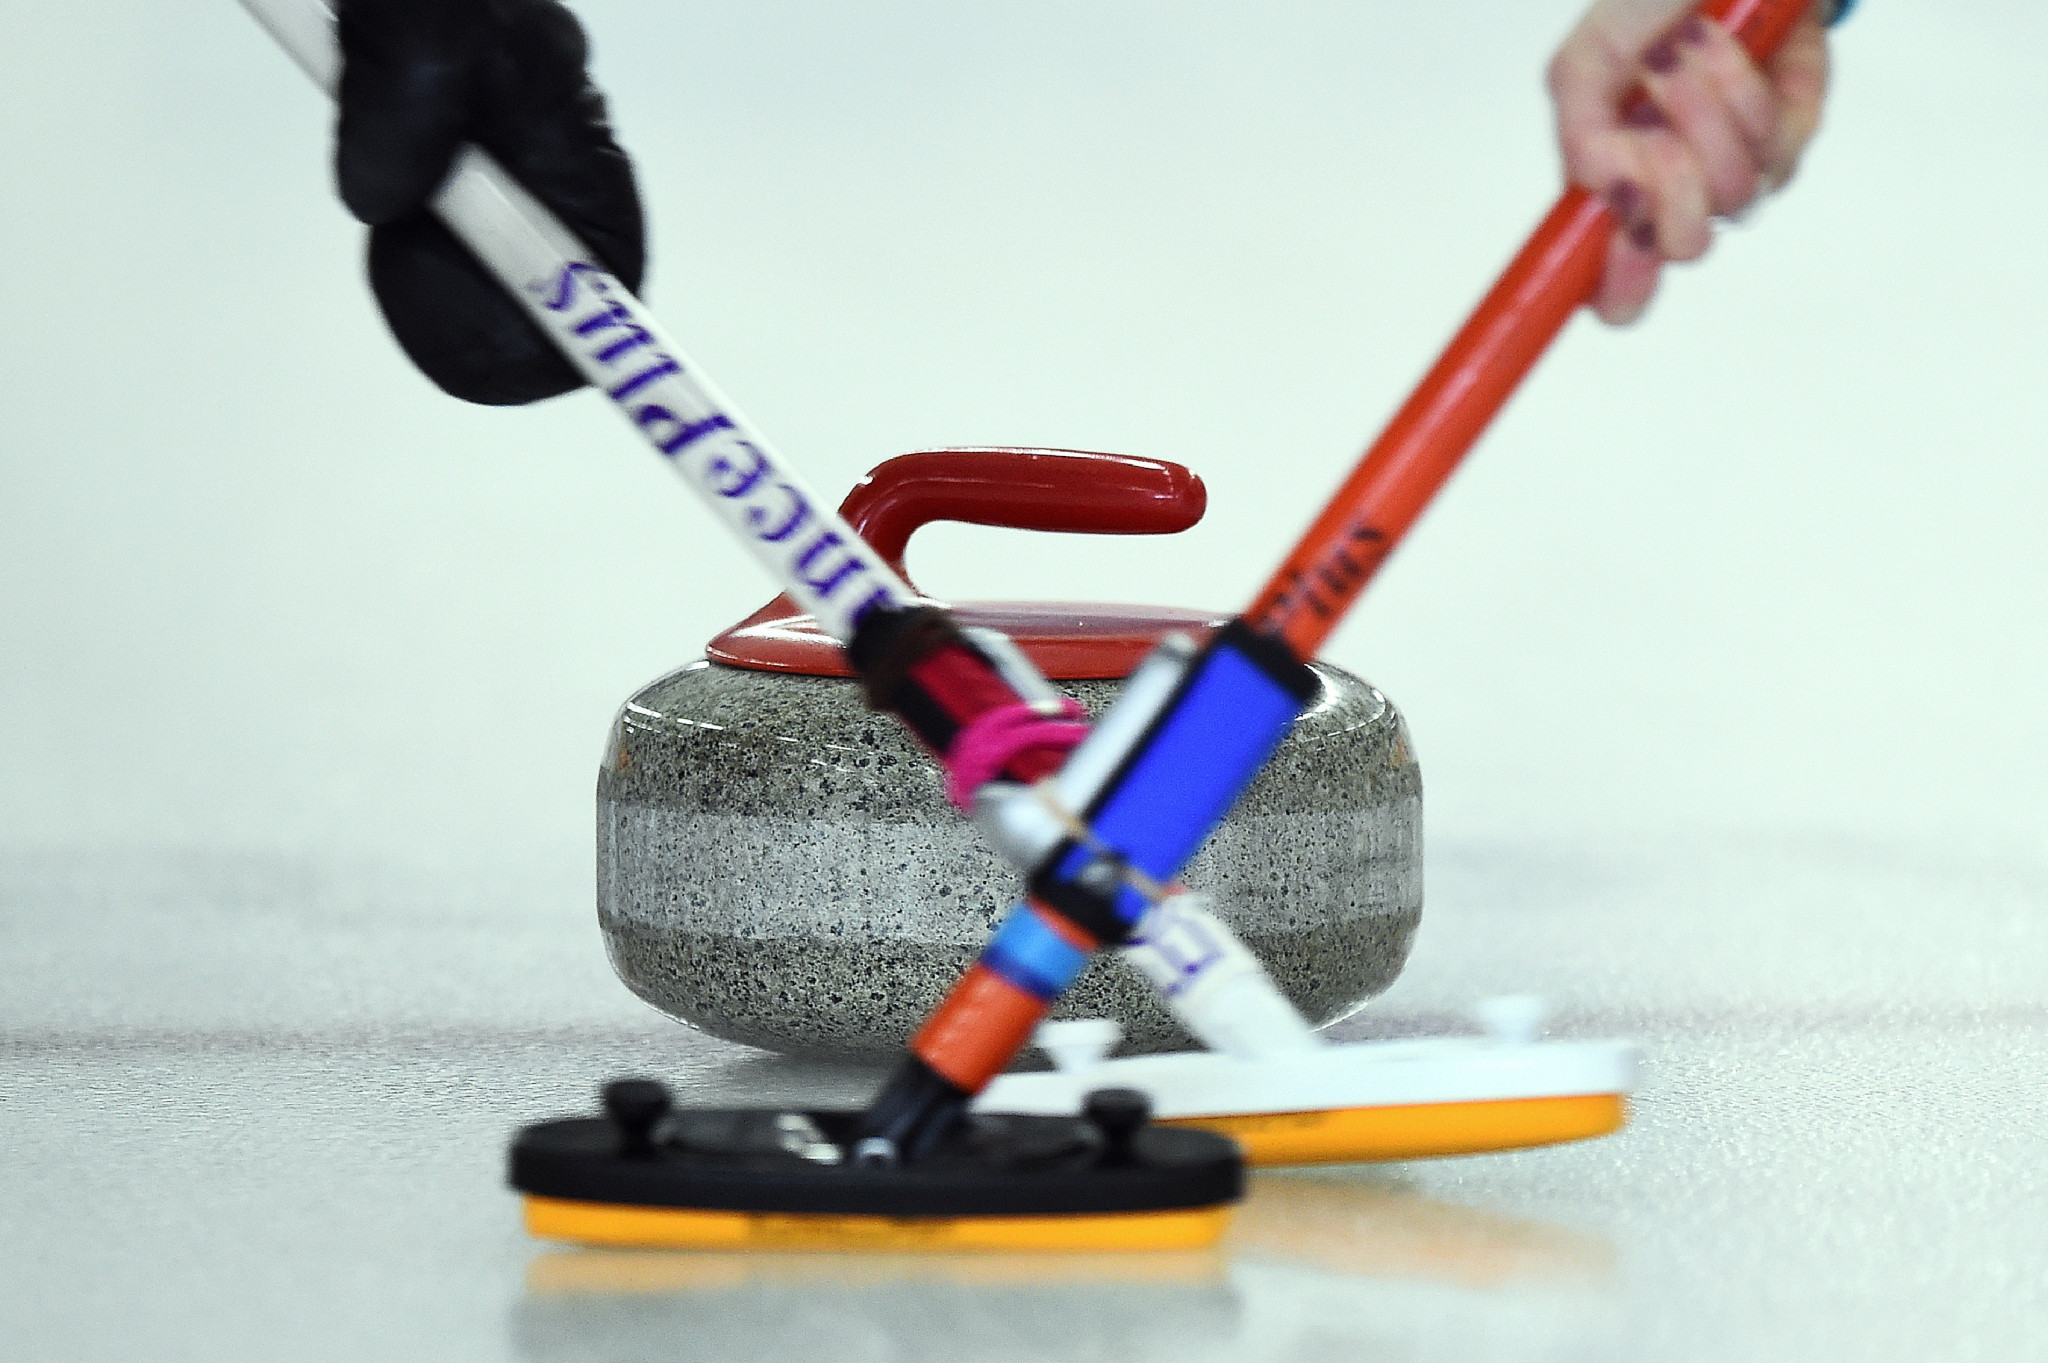 USA Curling College Championship and Tour to take place virtually